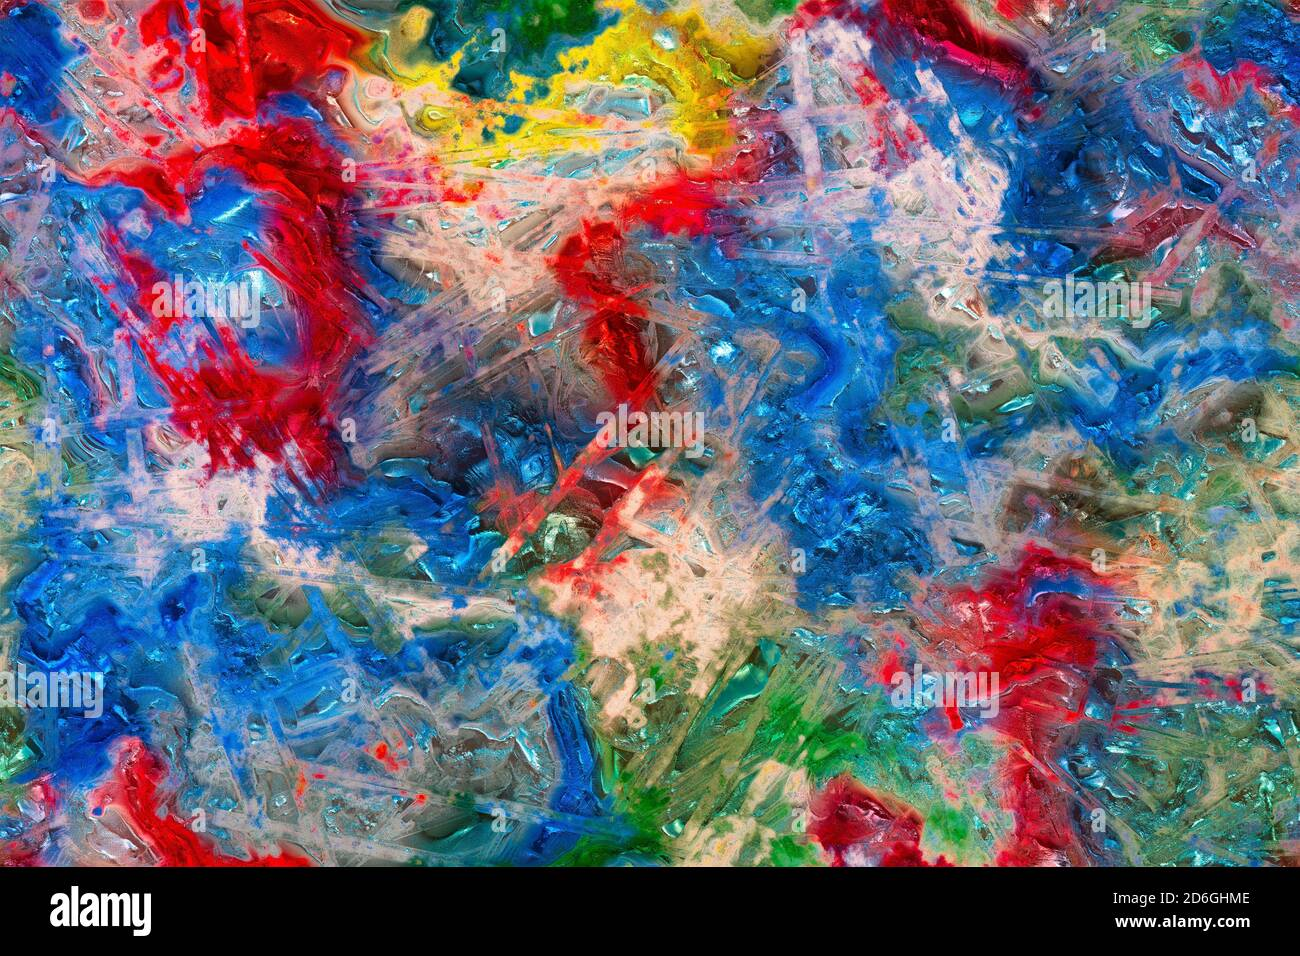 Abstract background with mix of colorful stains and irregular geometric lines. Mixture of colors in showy multicolored texture of plastic or gem look. Stock Photo